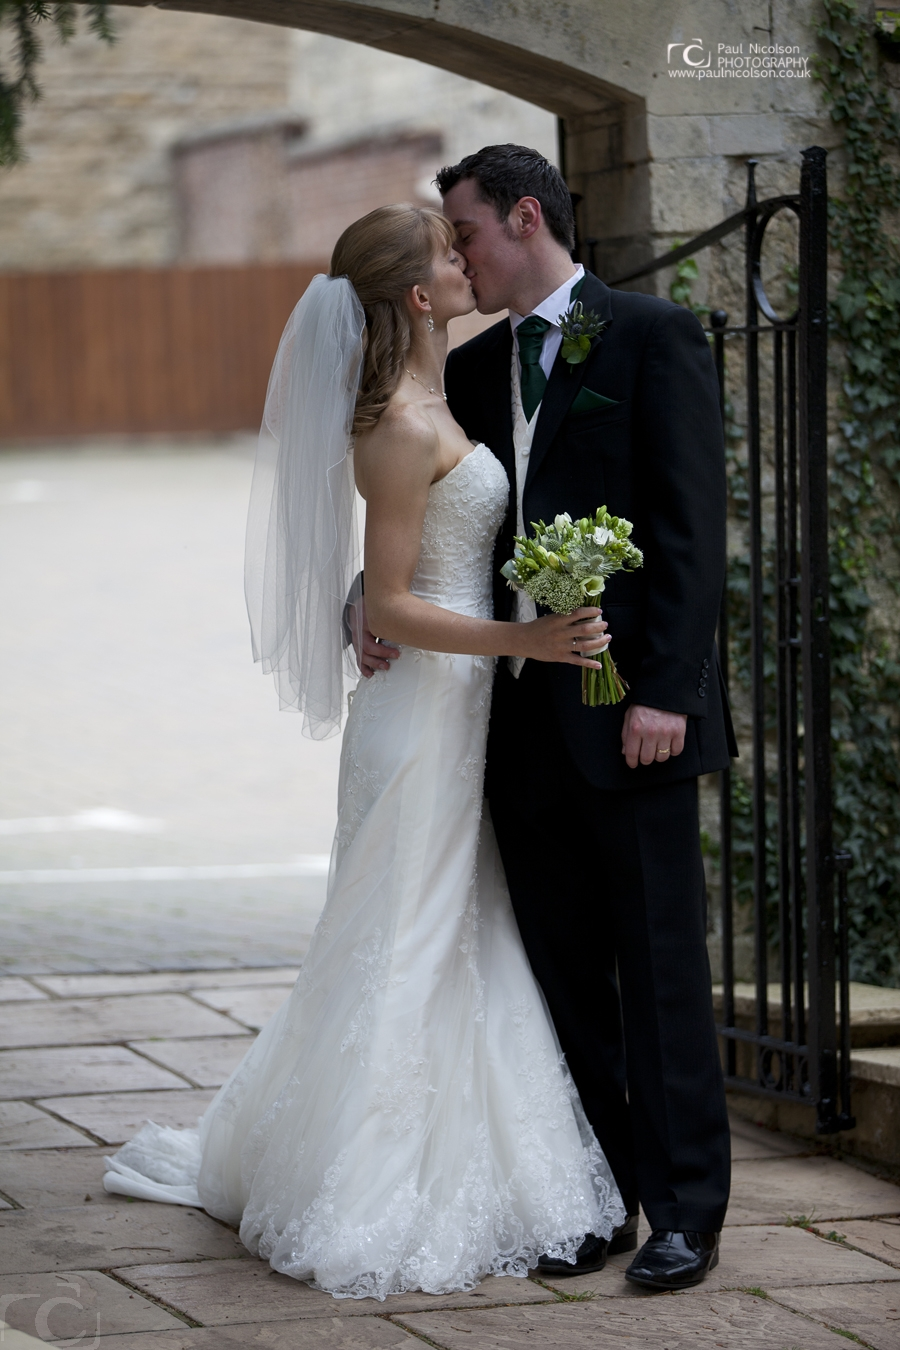 Bride and Groom Wedding Kiss at The george Hotel Gardens Stamford george hotel weddings